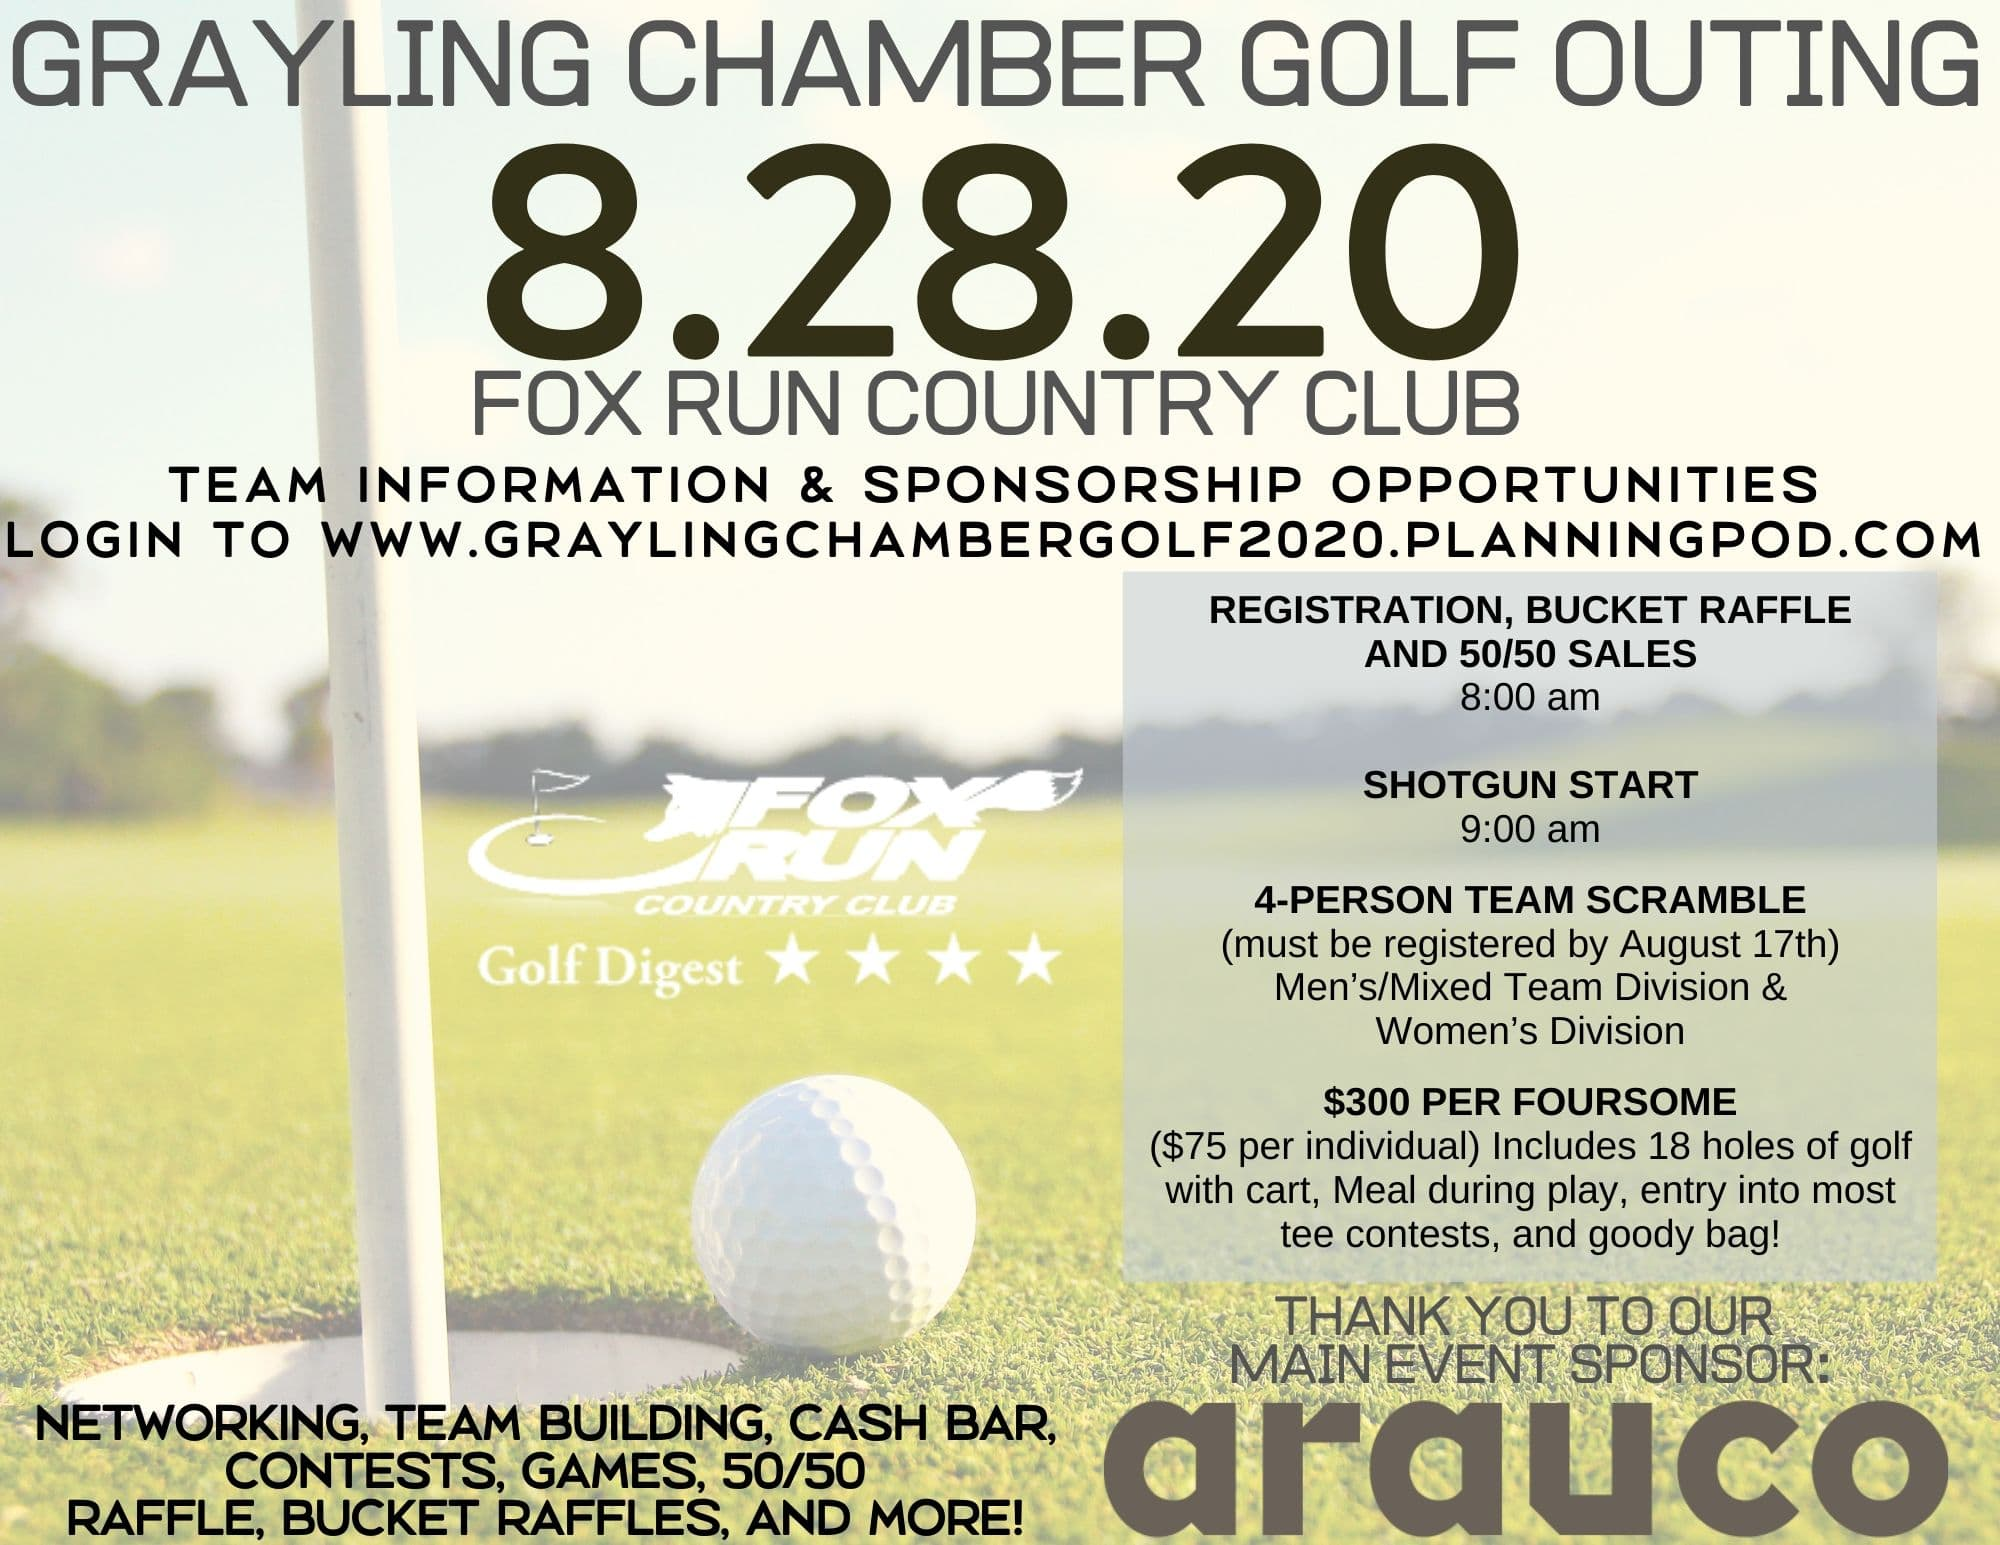 REGISTER ONLINE FOR THIS YEAR'S CHAMBER GOLF OUTING!